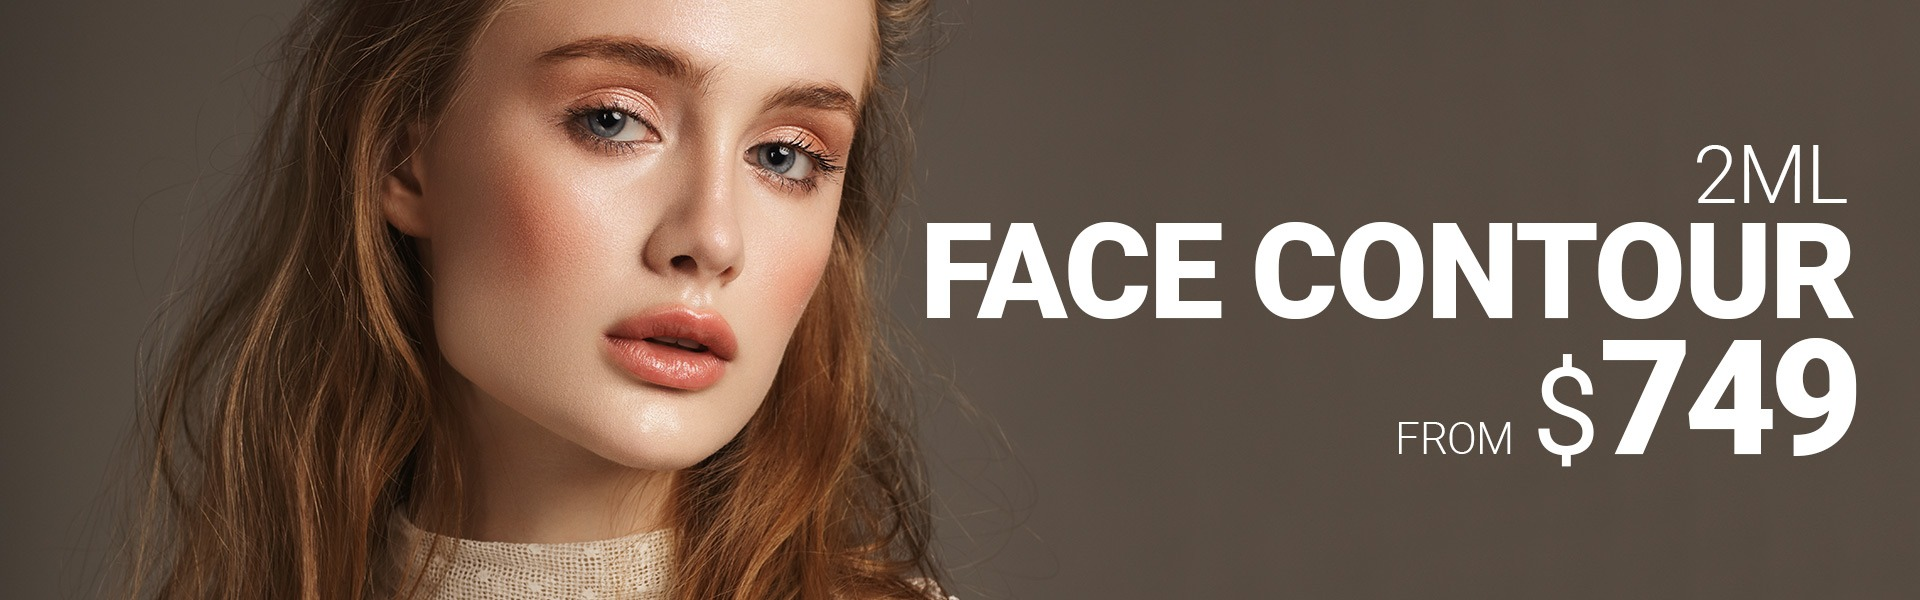 face contouring by M1